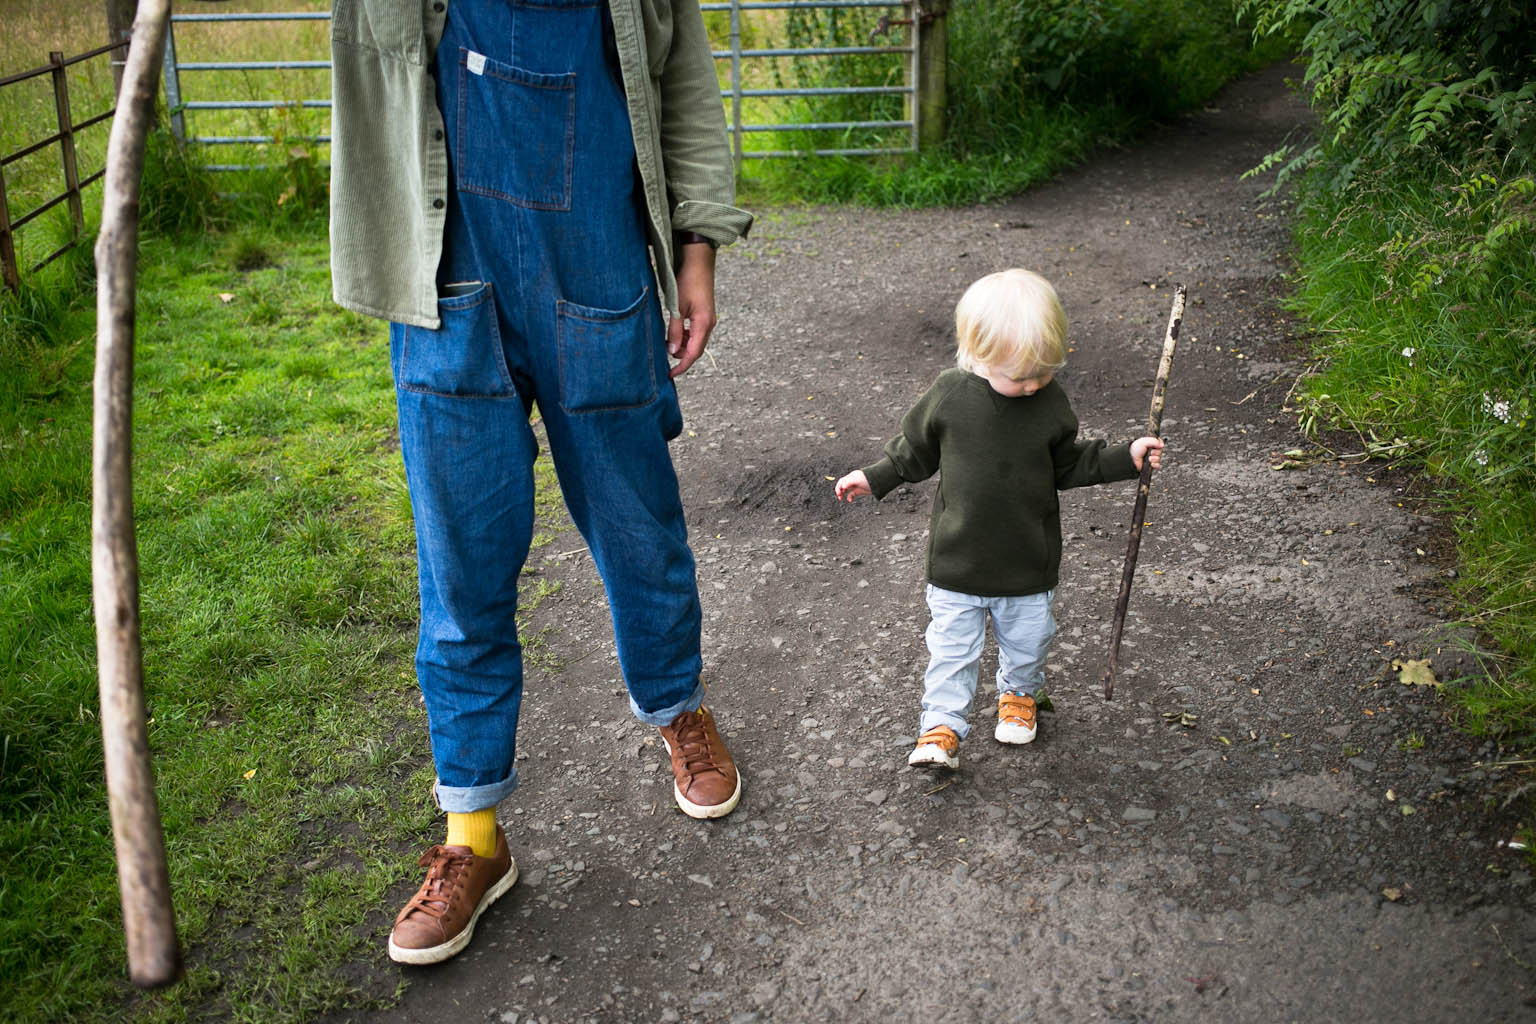 Young boy walking with father both carrying sticks